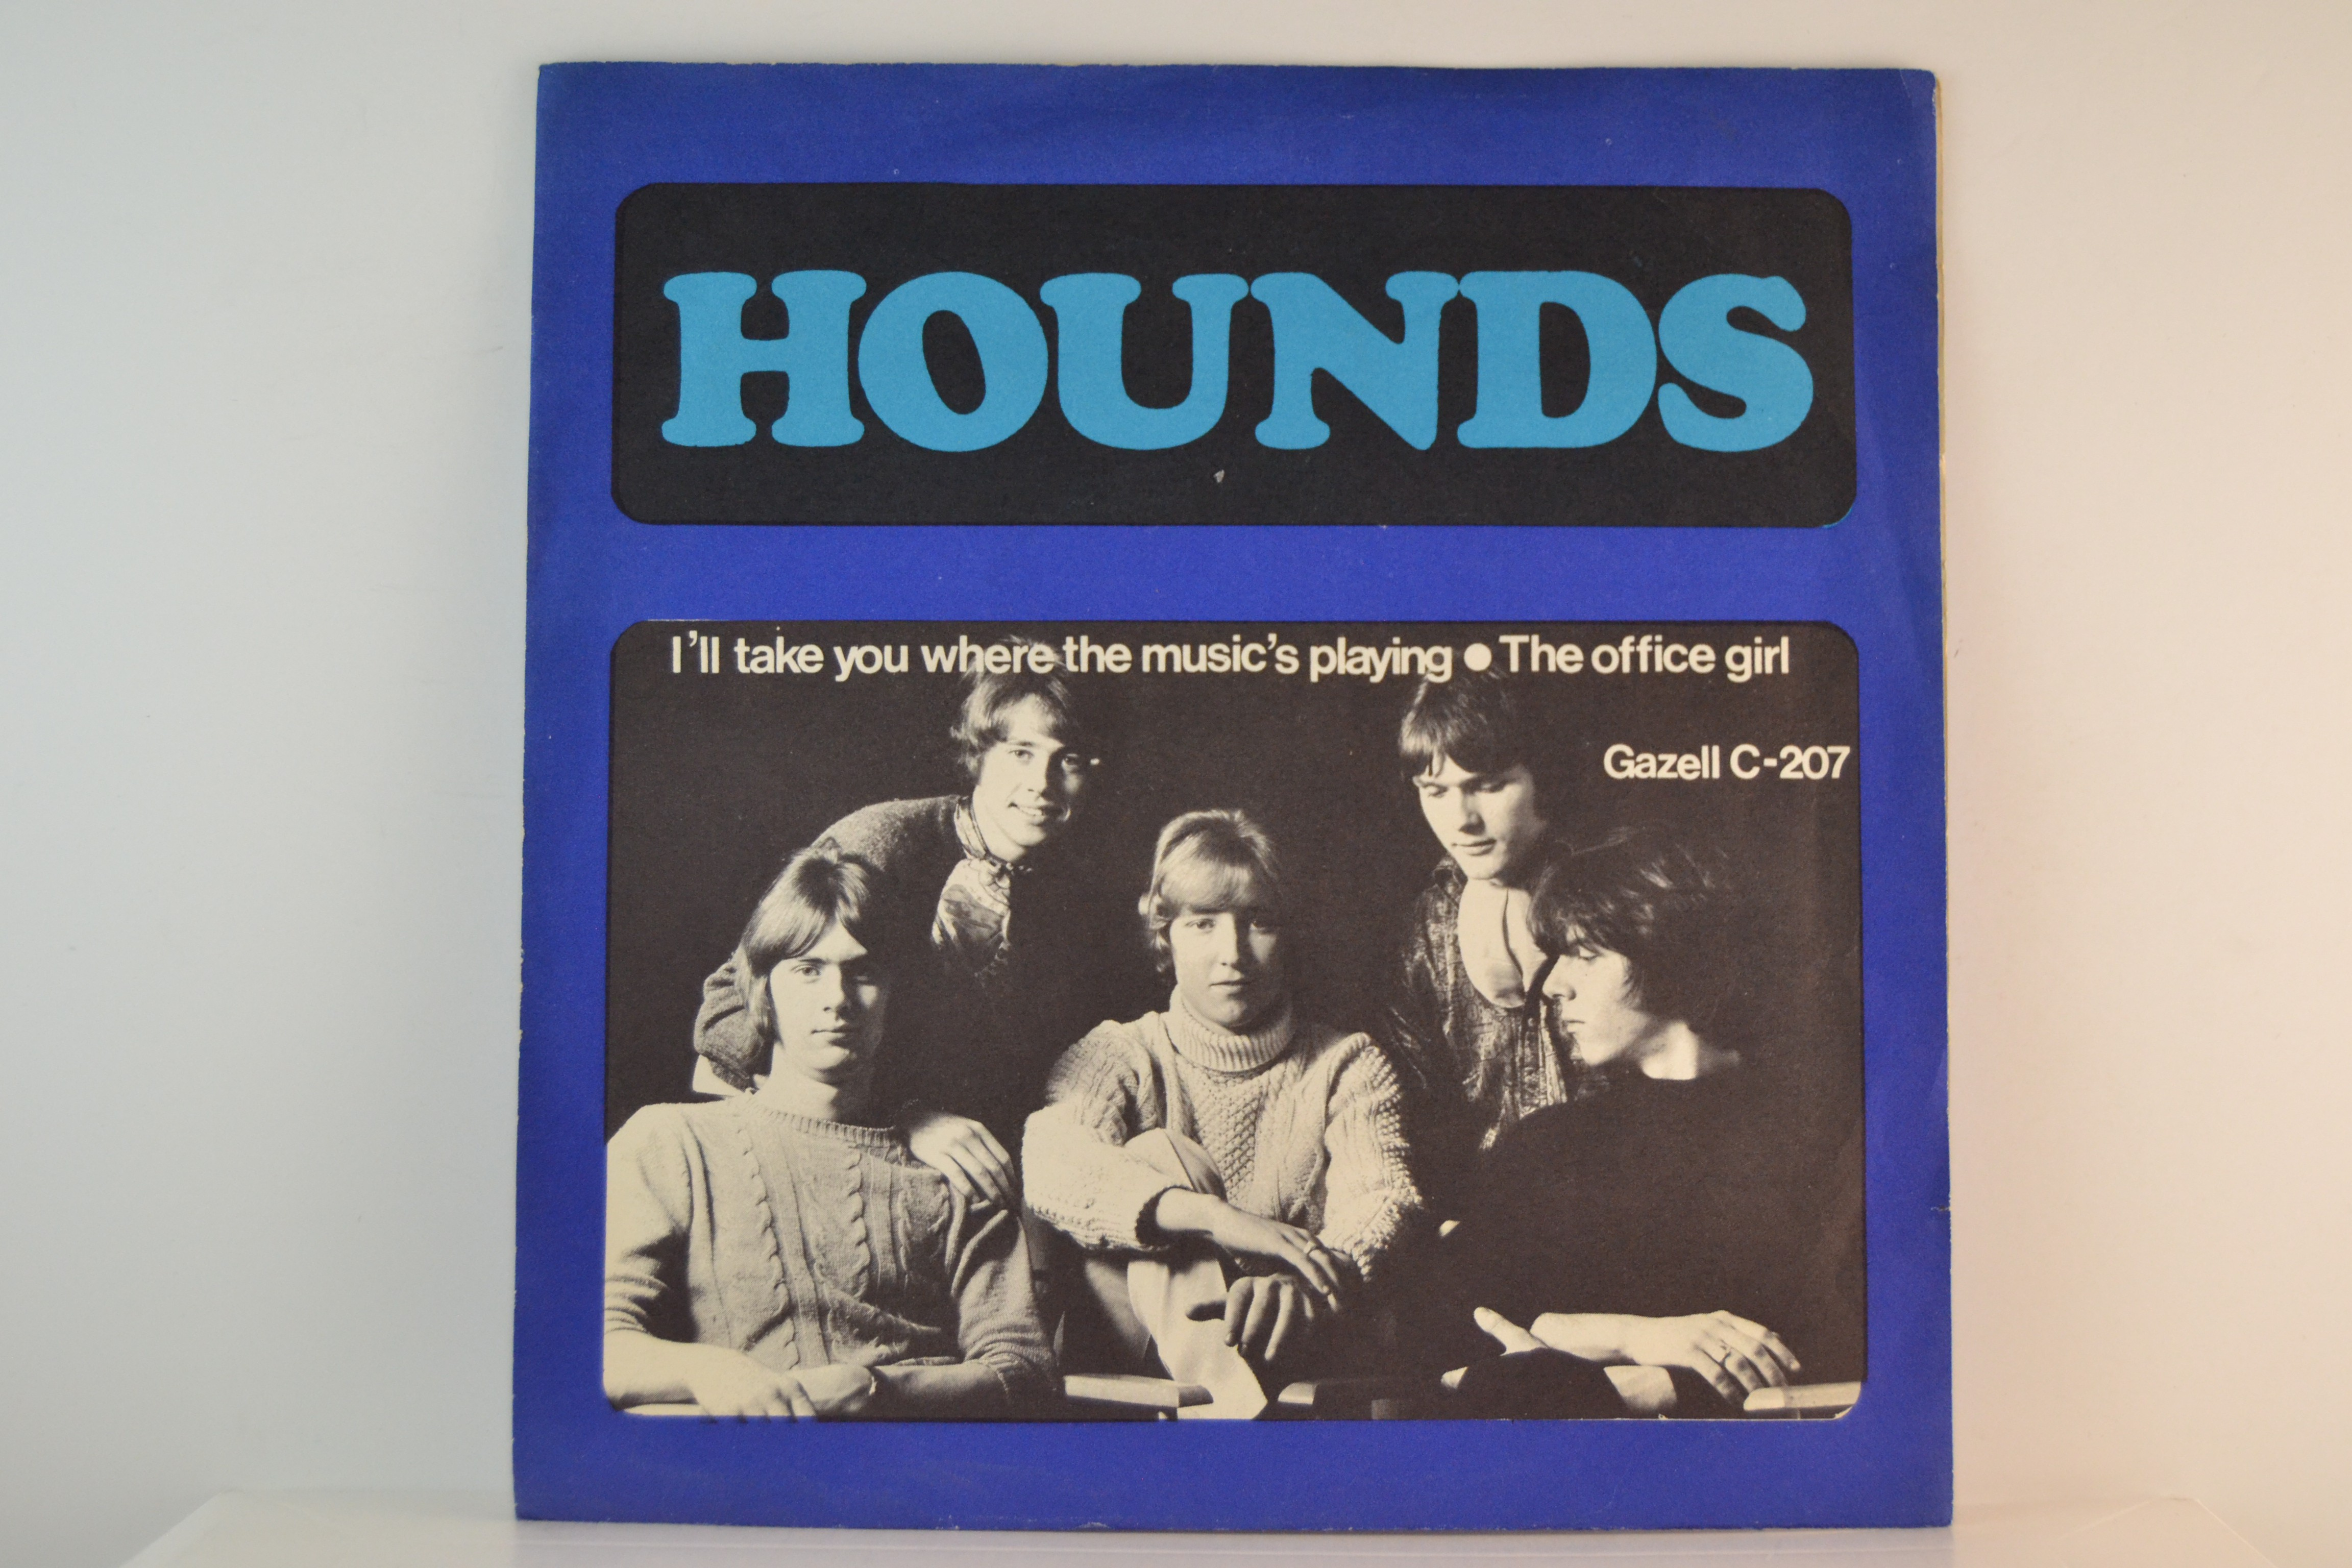 HOUNDS : I'll take you where the music's playing / The office girl